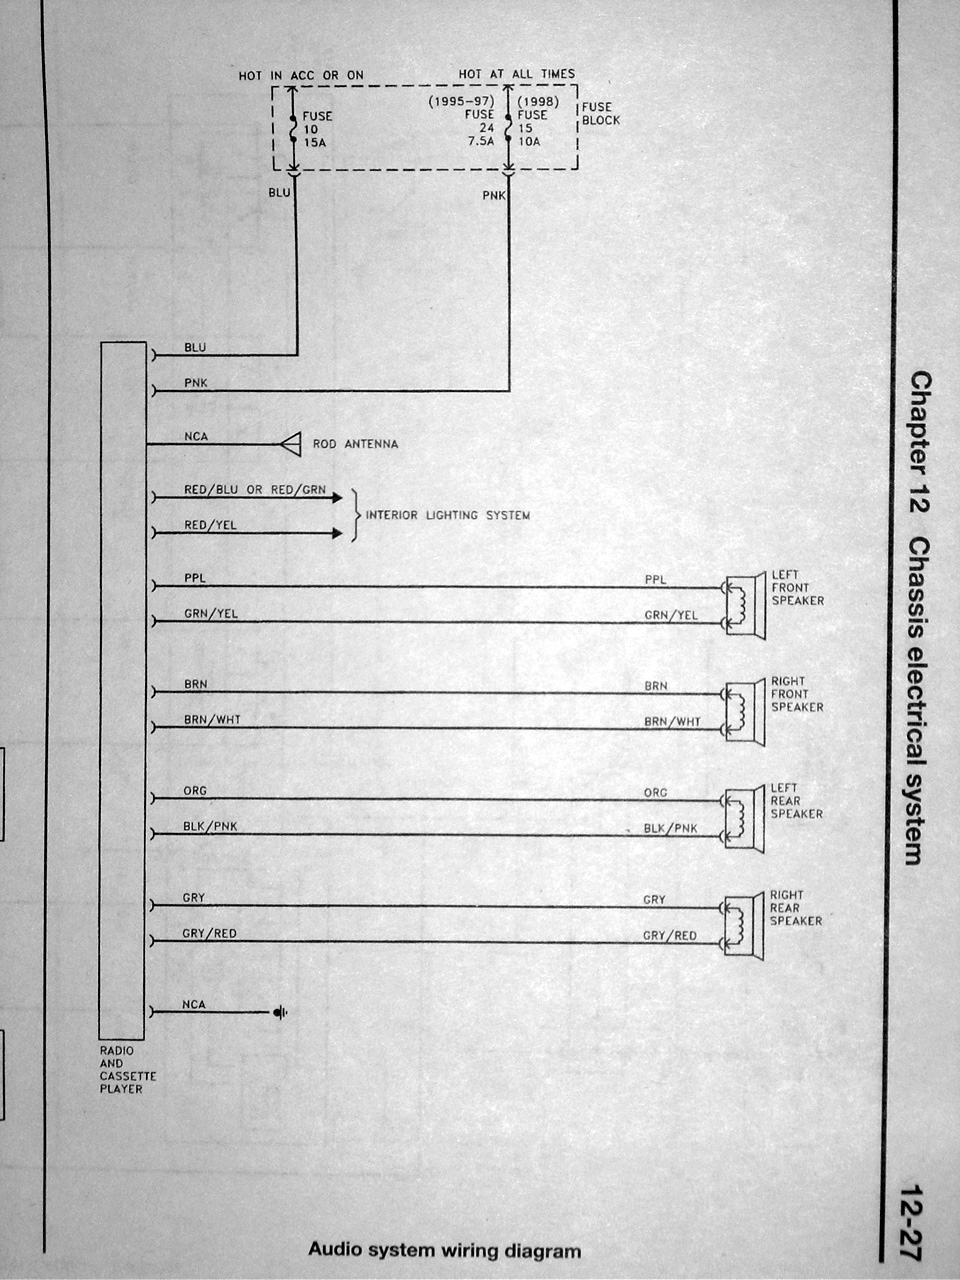 DSC01849 wiring diagram thread *useful info* nissan forum 2003 nissan 350z bose audio wiring diagram at eliteediting.co